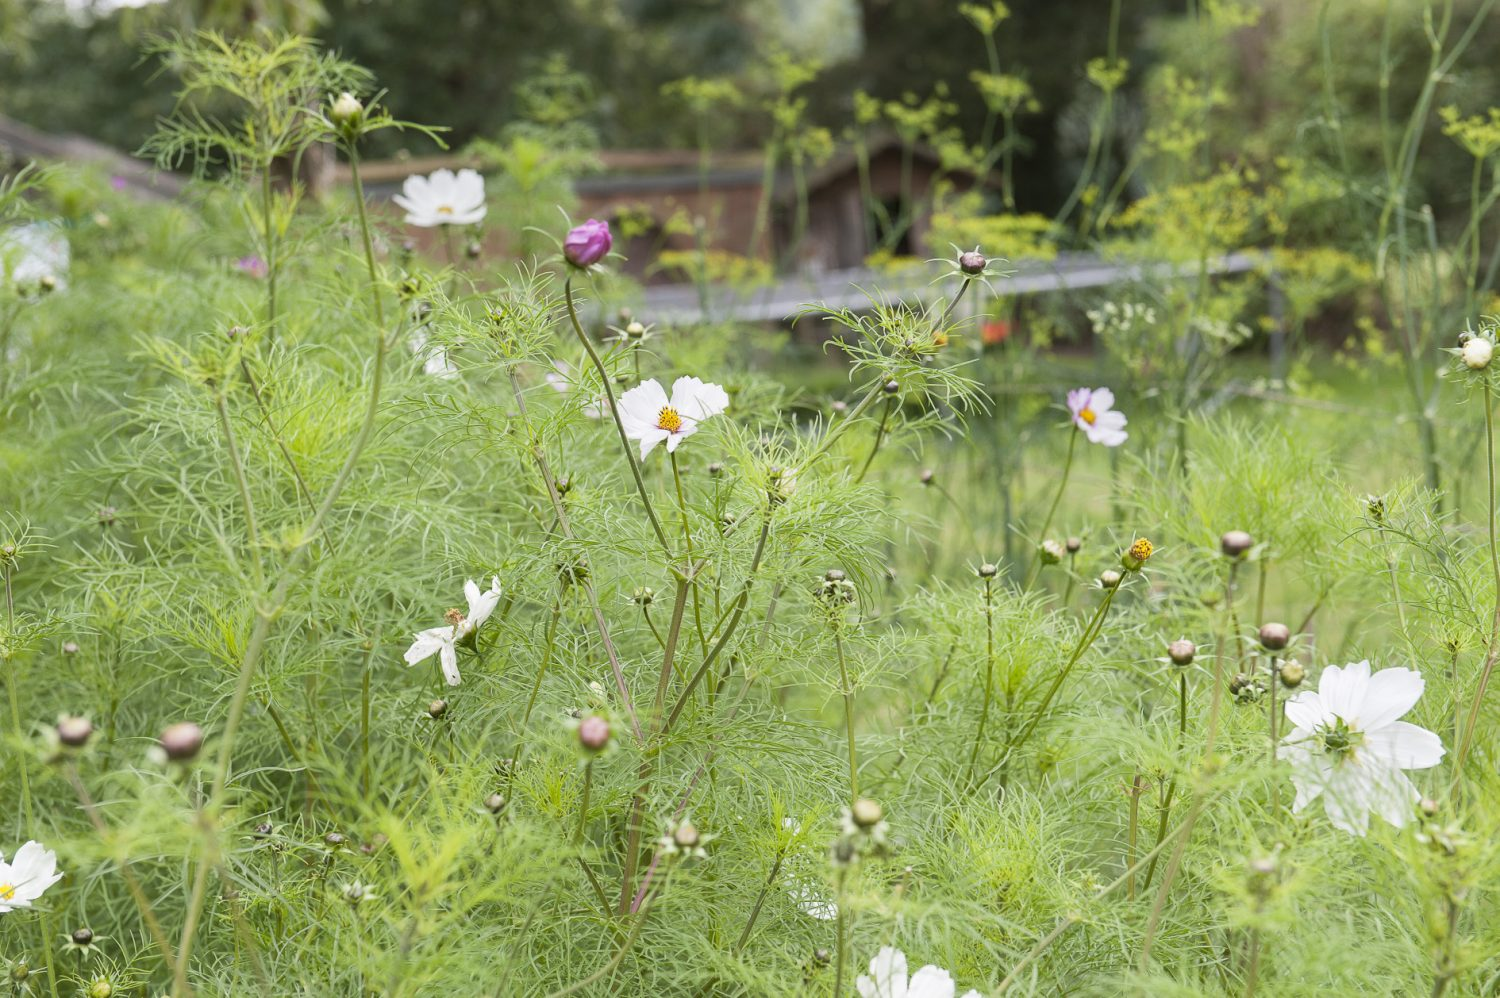 Cosmos fronds provide a rich sea of greenery dotted with pink and white petals